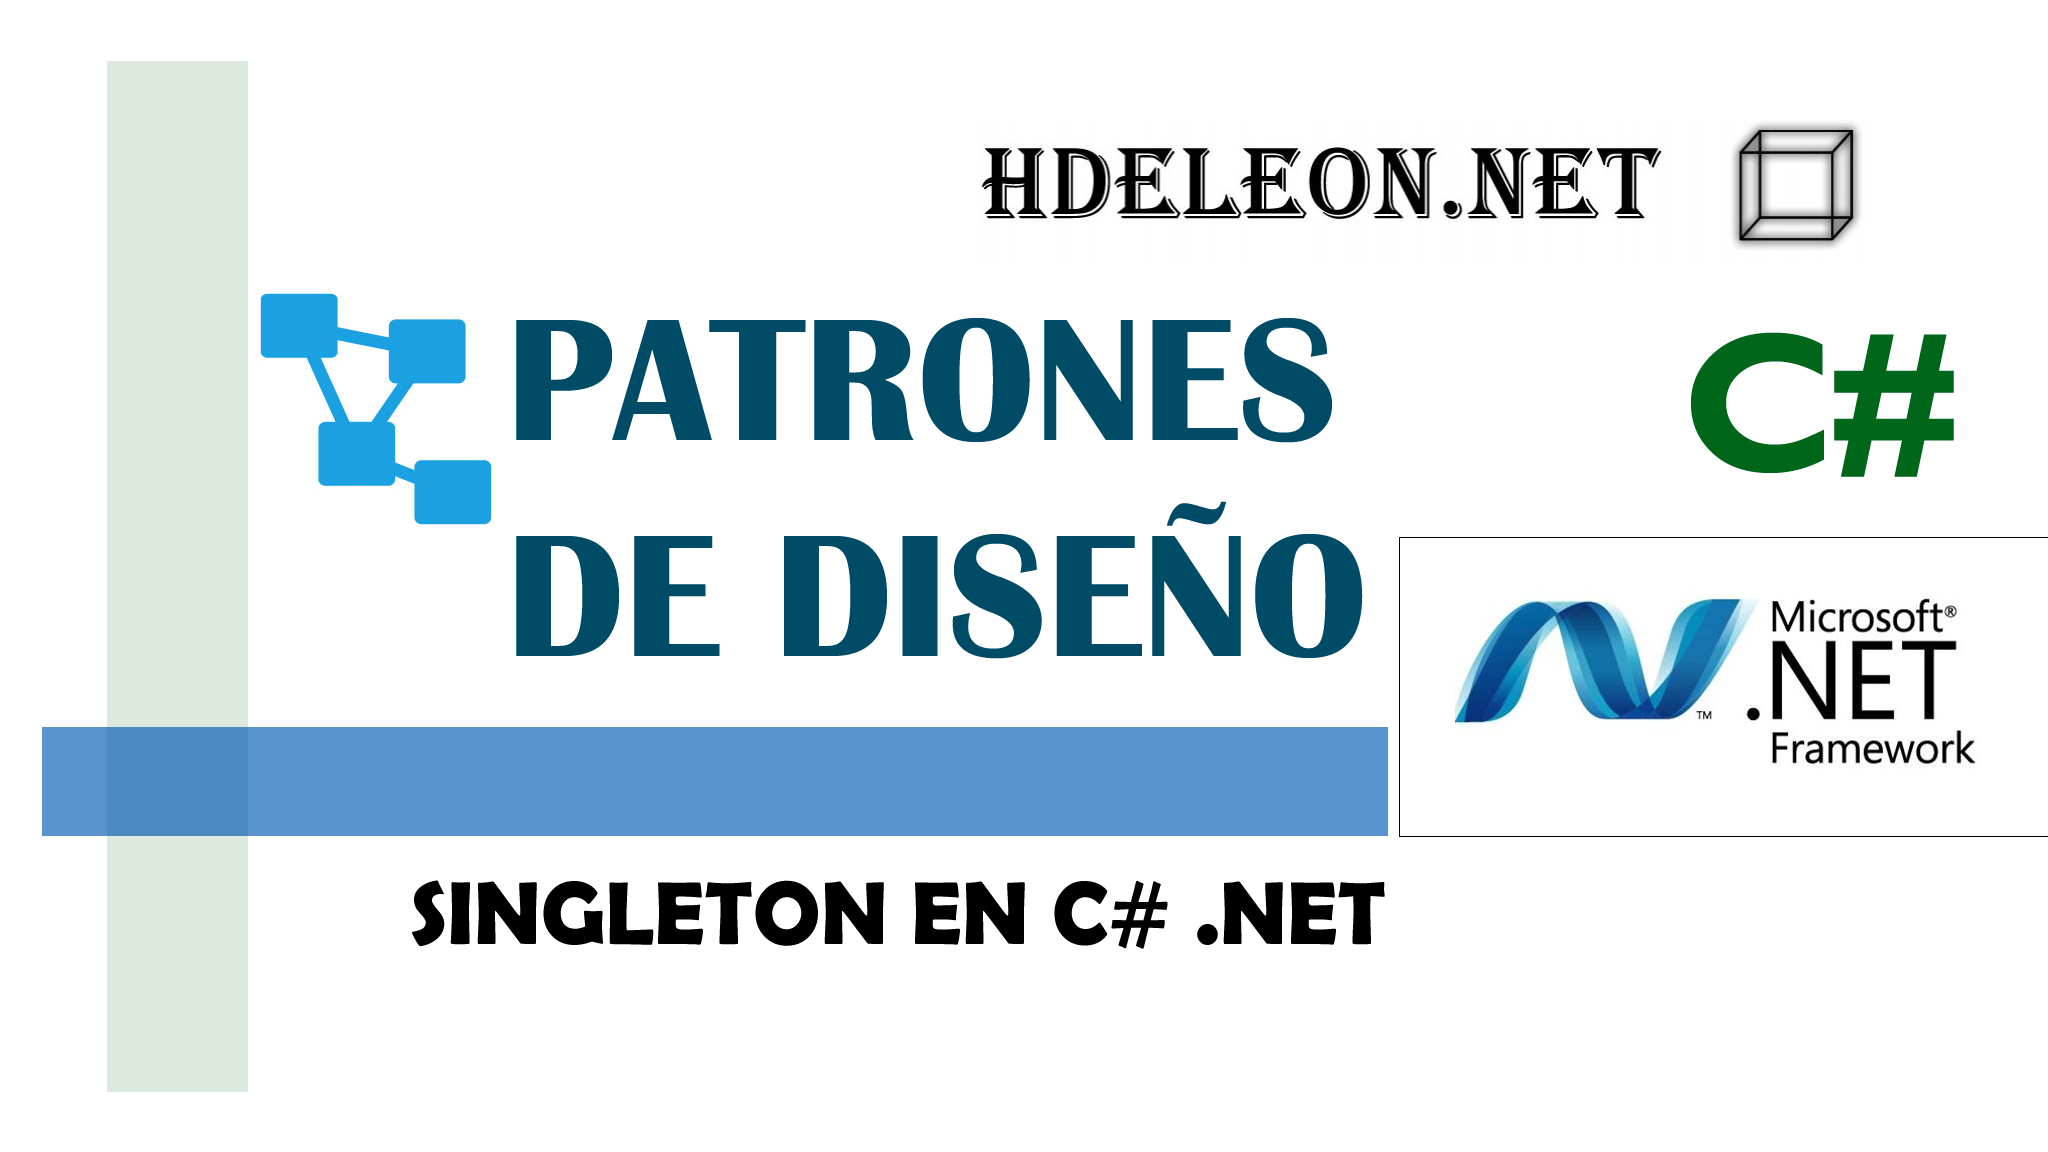 Singleton en C# .Net, Patrones de diseño, design patterns, #1